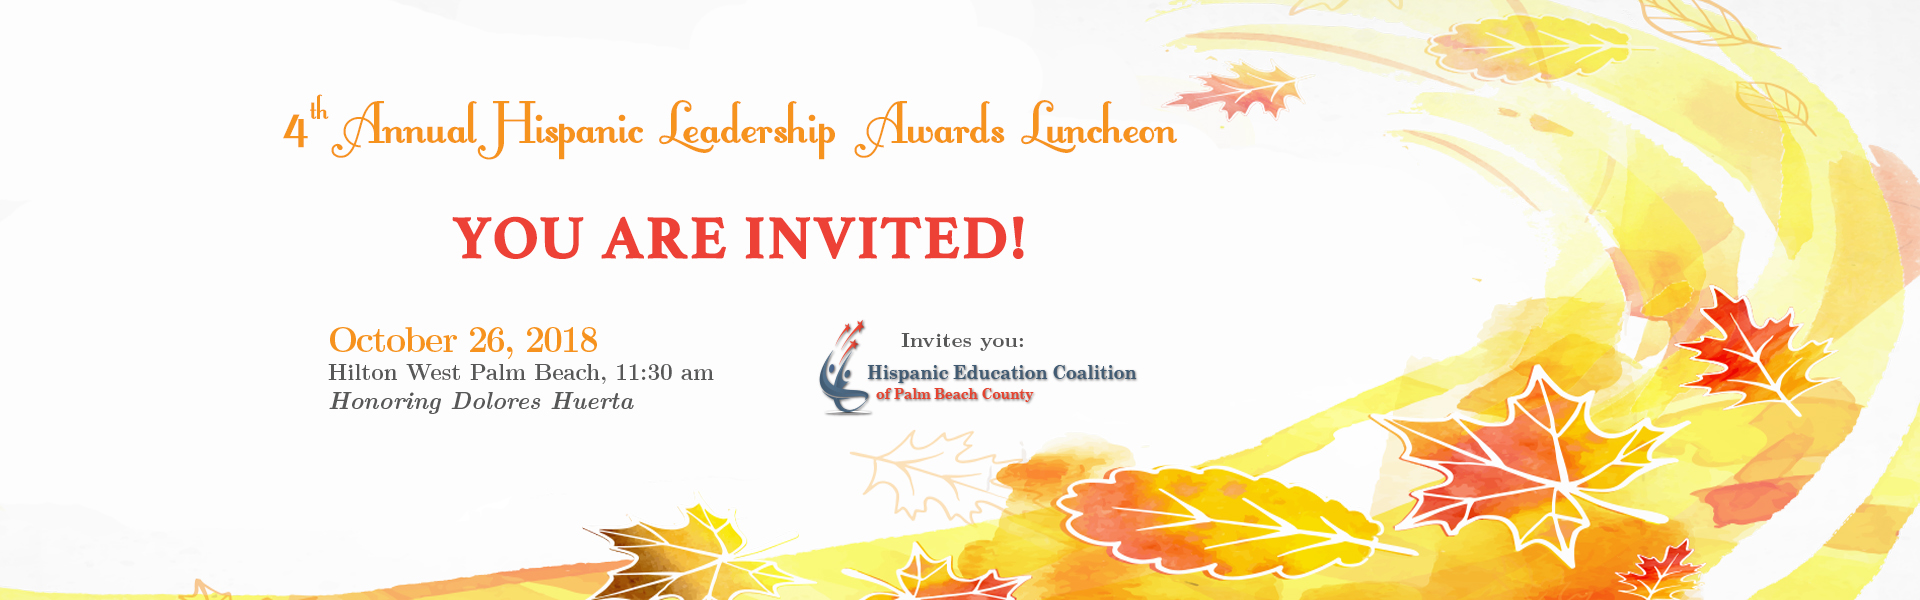 invitation-2018-leadership